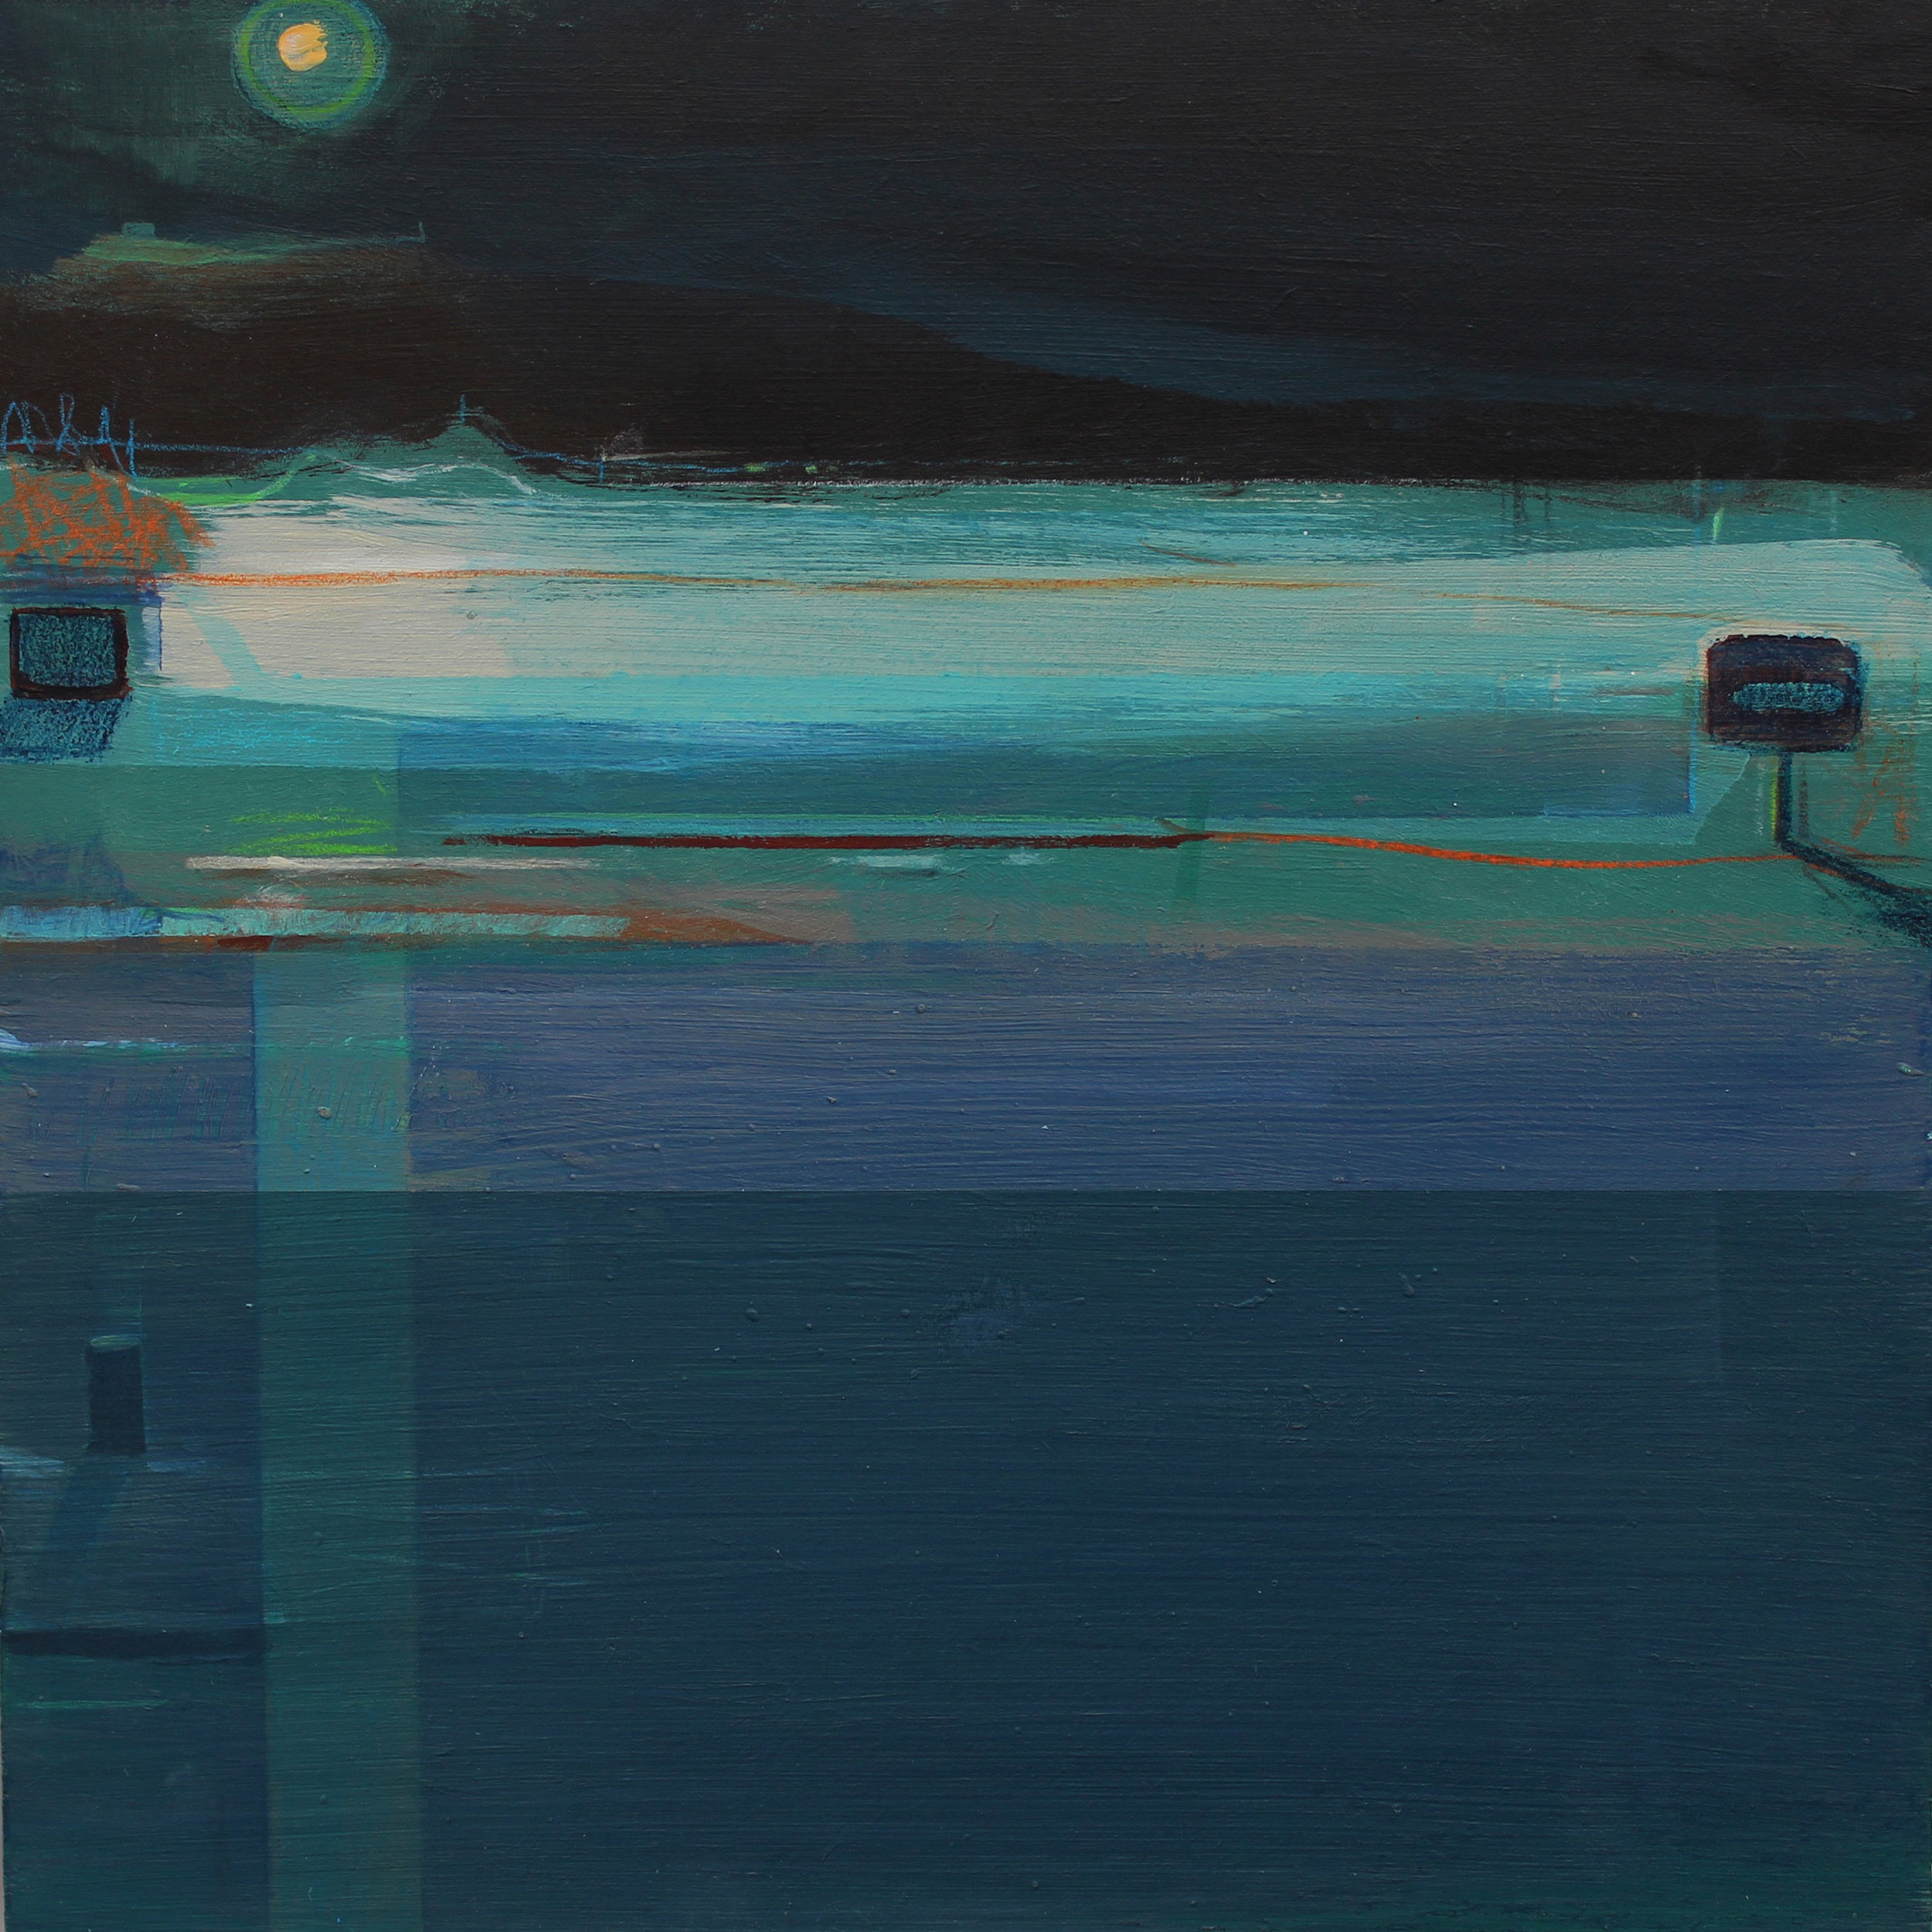 Moonlit coast, acrylic on board, 30x30 cm, £sold.